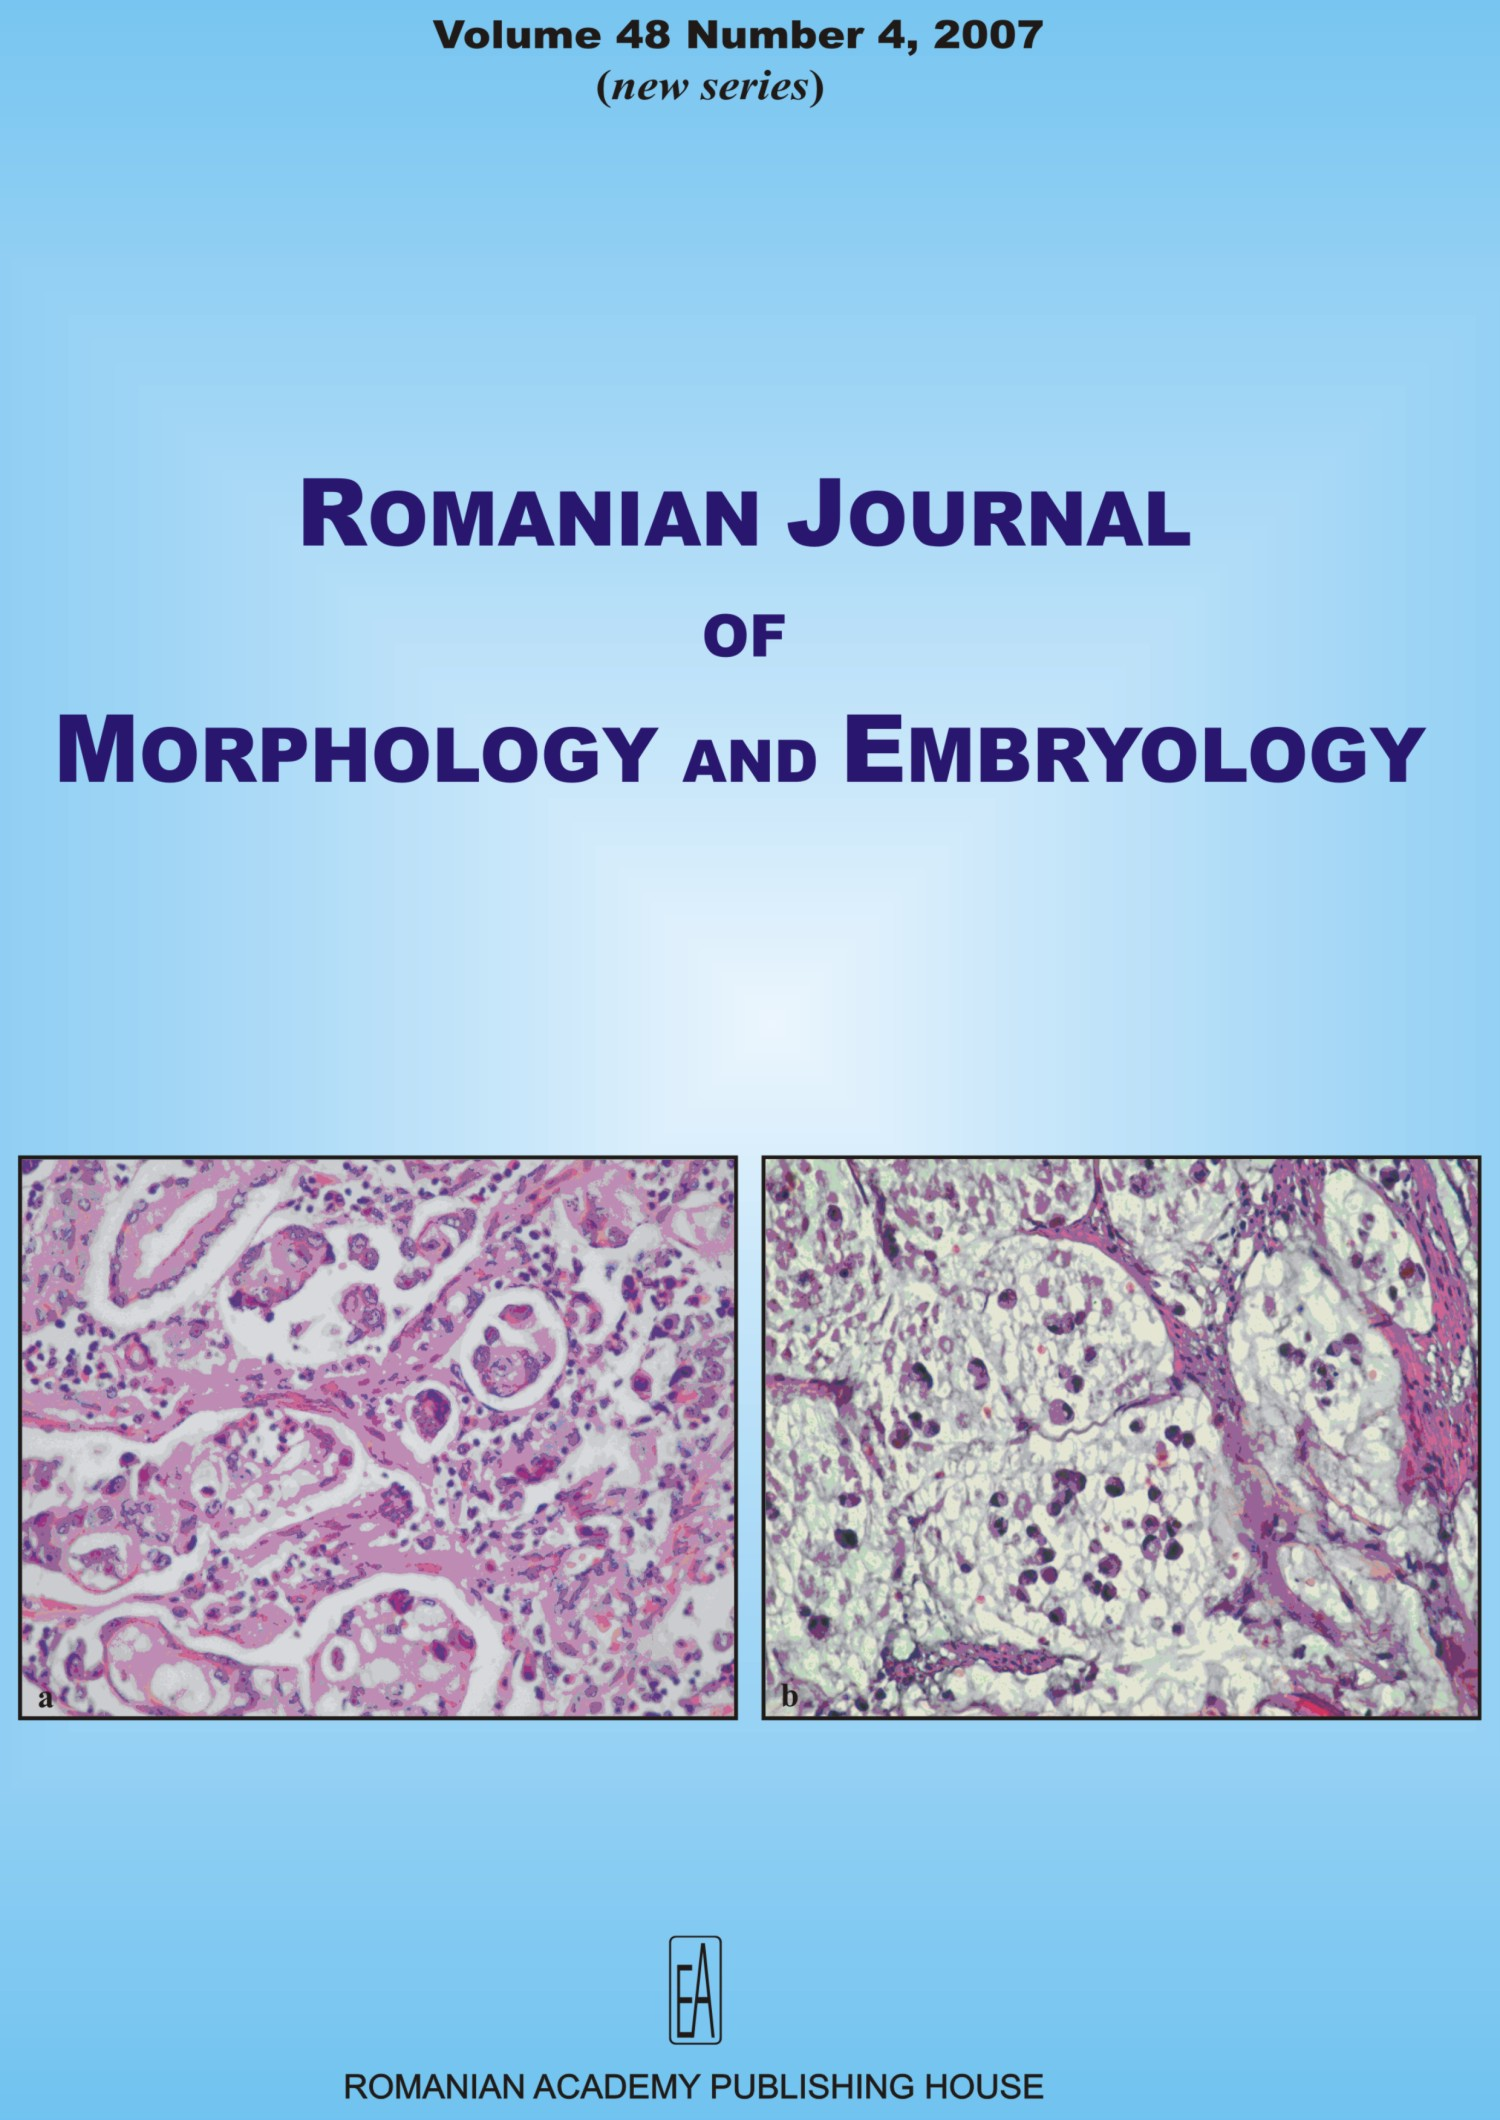 Romanian Journal of Morphology and Embryology, vol. 48 no. 4, 2007